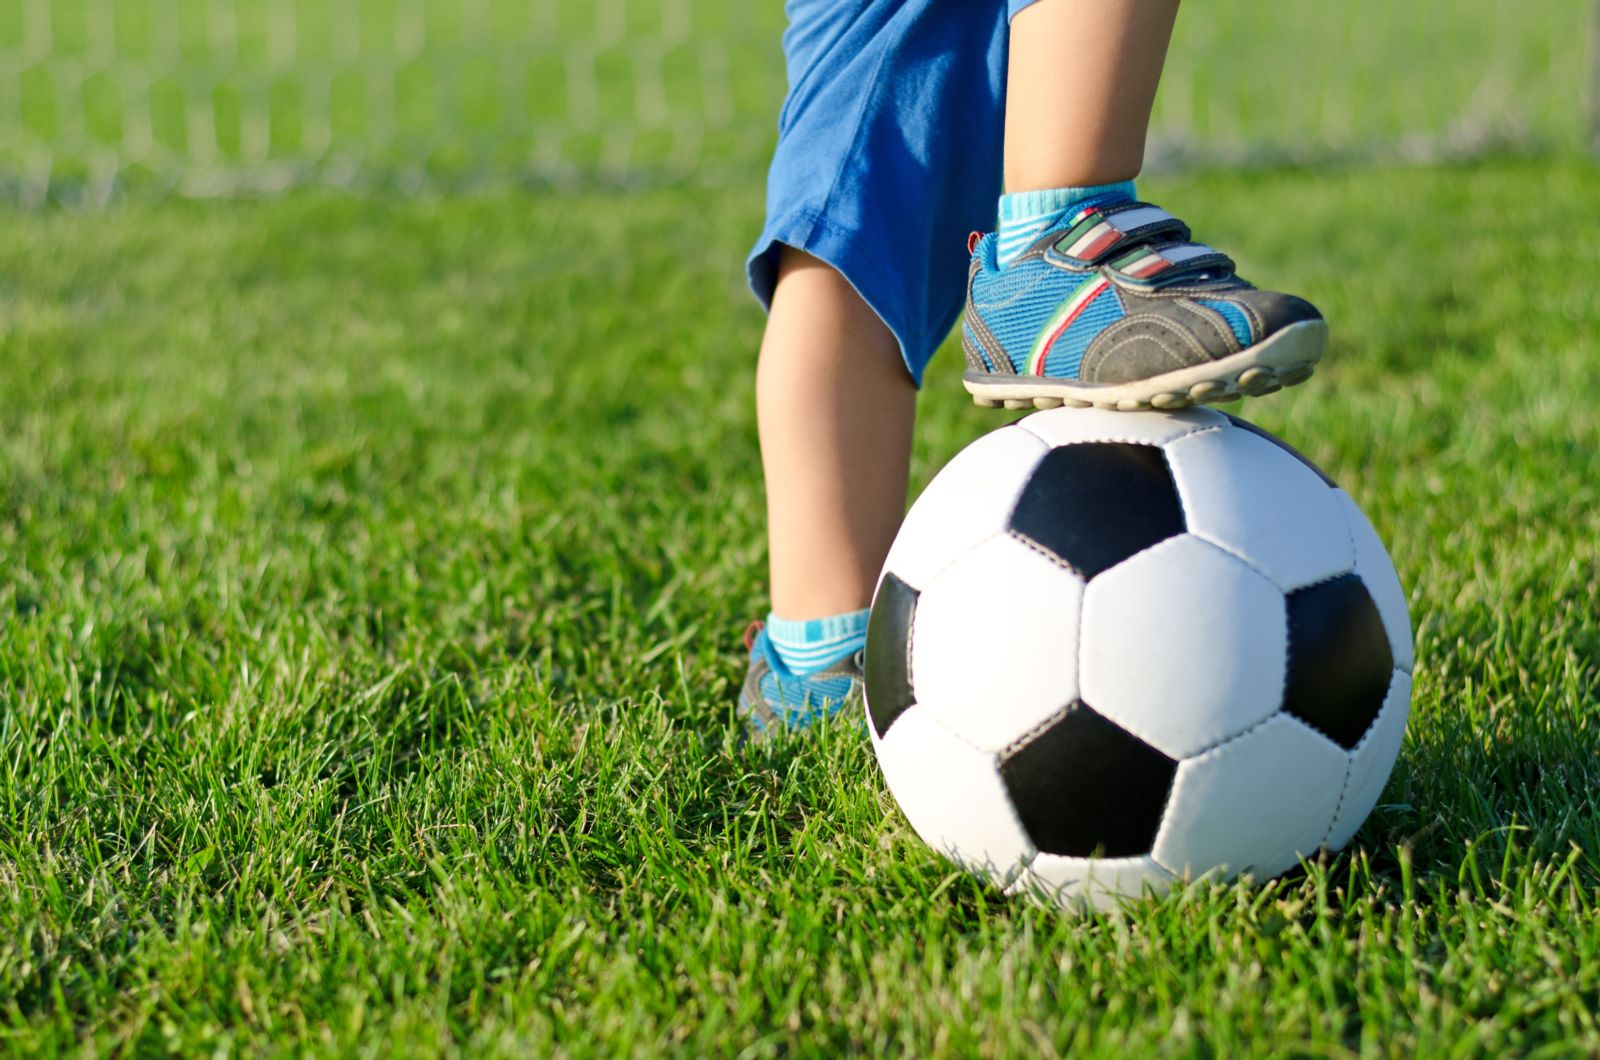 Child athlete's, like youth soccer players, are at risk for Sever's Disease